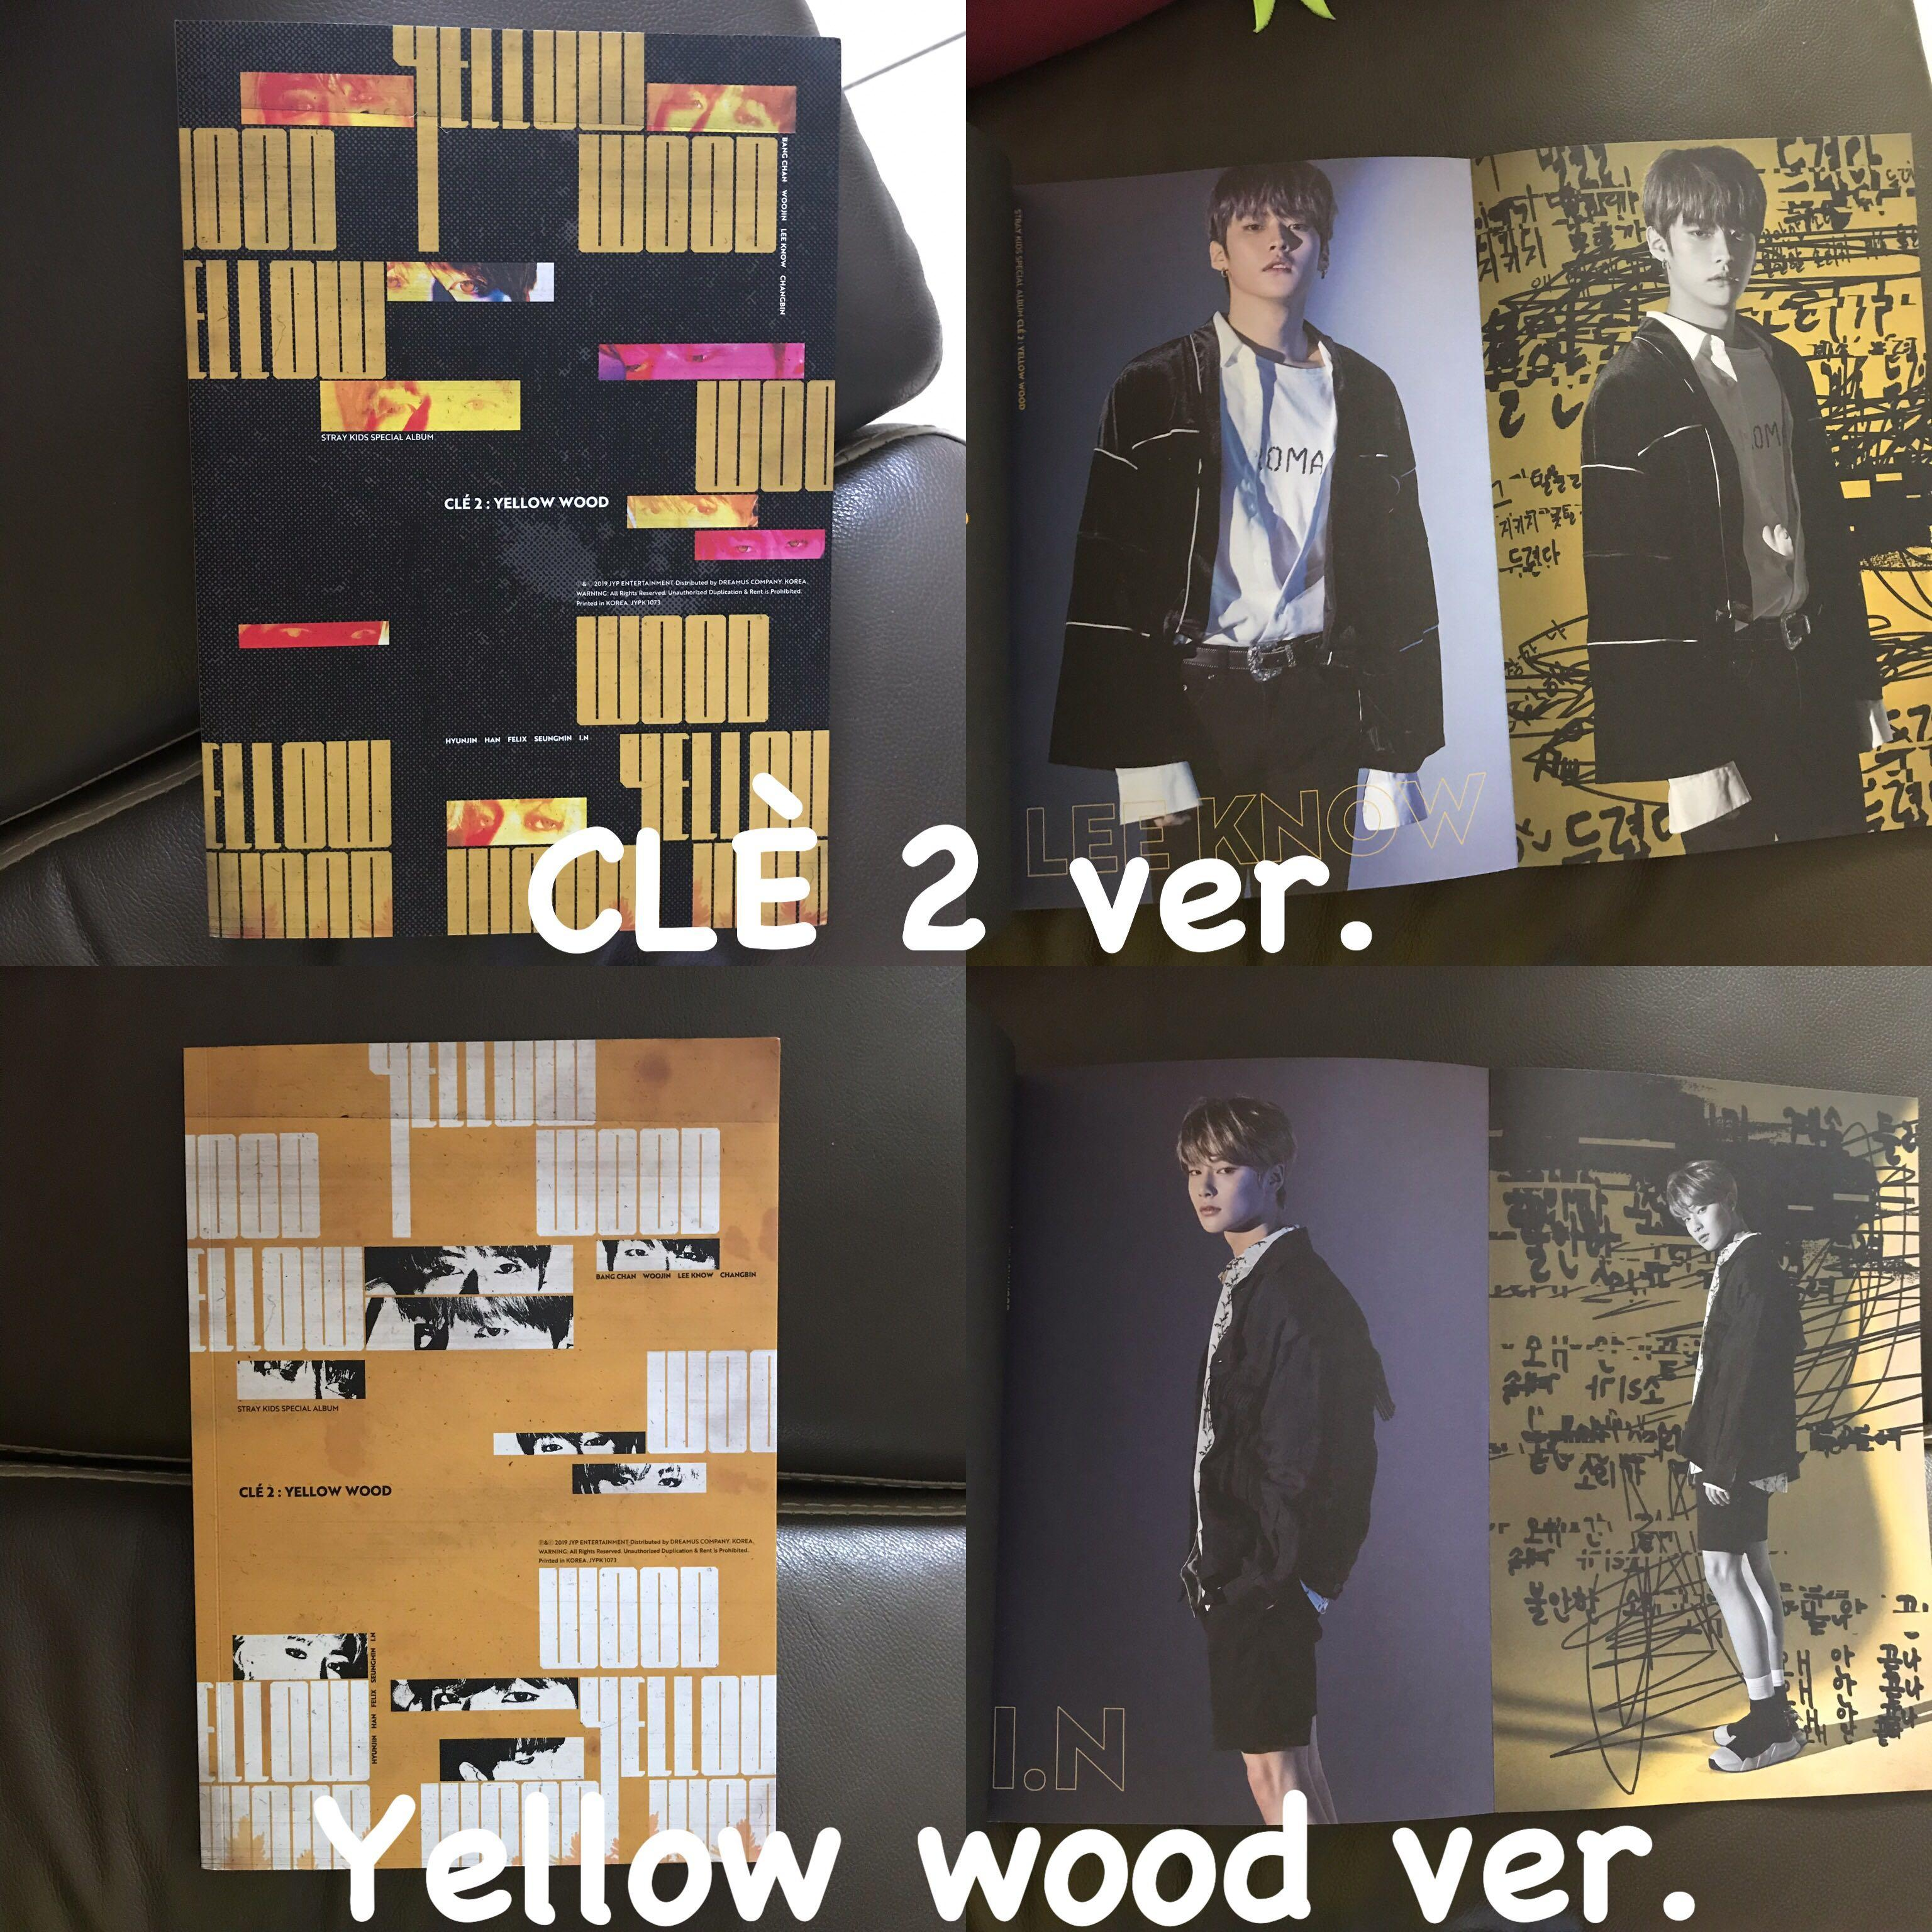 [Price reduced] Stray kids yellow wood unsealed album